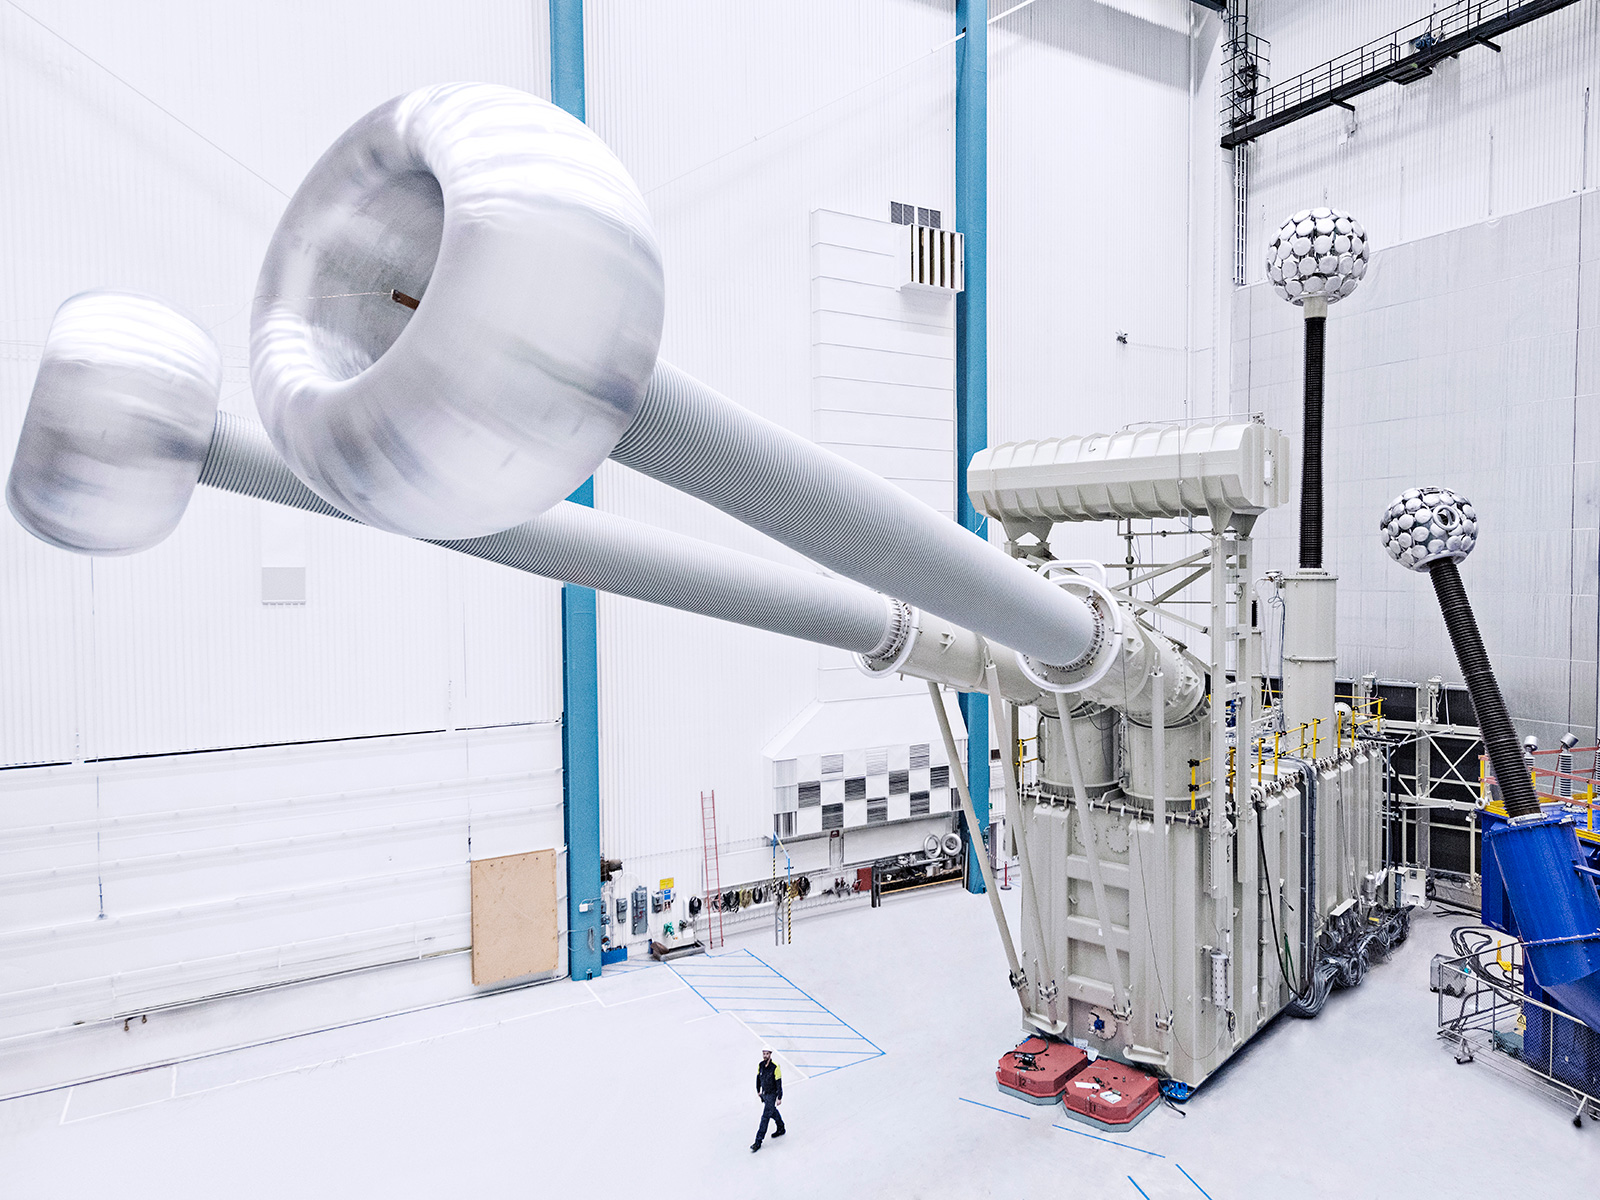 medium resolution of abb has set another pioneering innovation record with the successful testing of the low and high voltage units of the world s most powerful